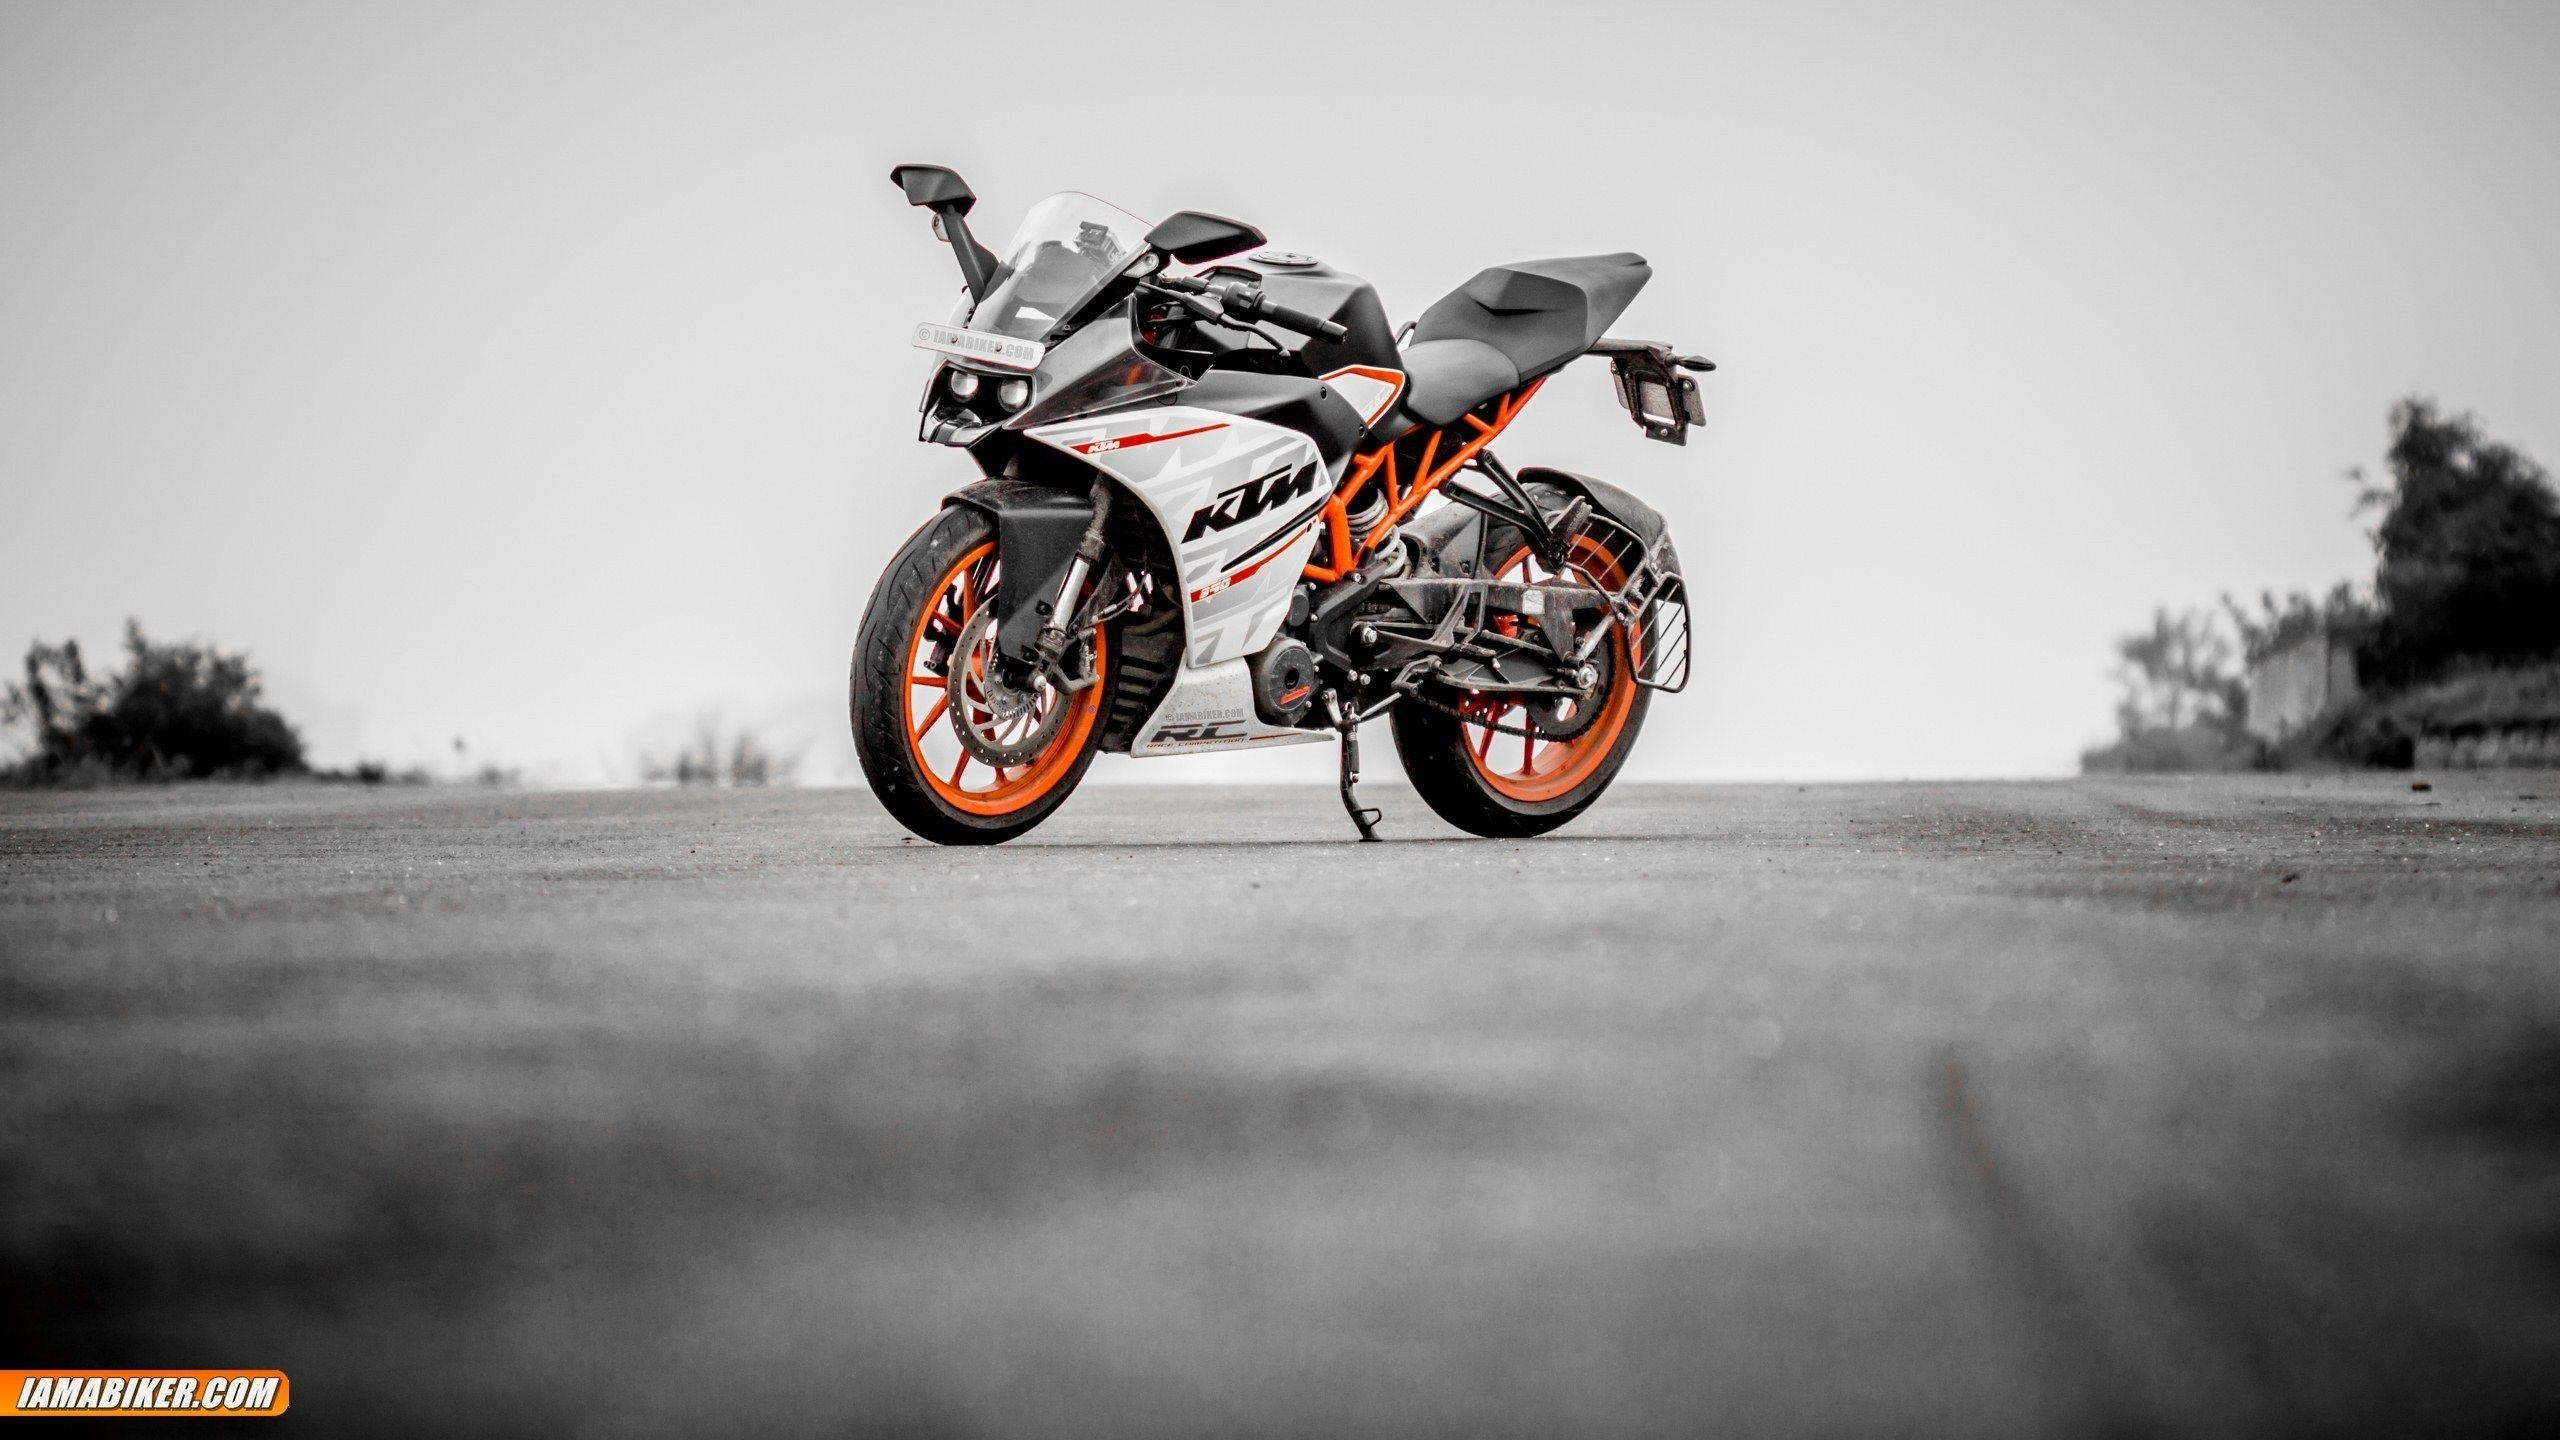 2560x1440 KTM Duke Bike HD Wallpapers - WallpaperSafari